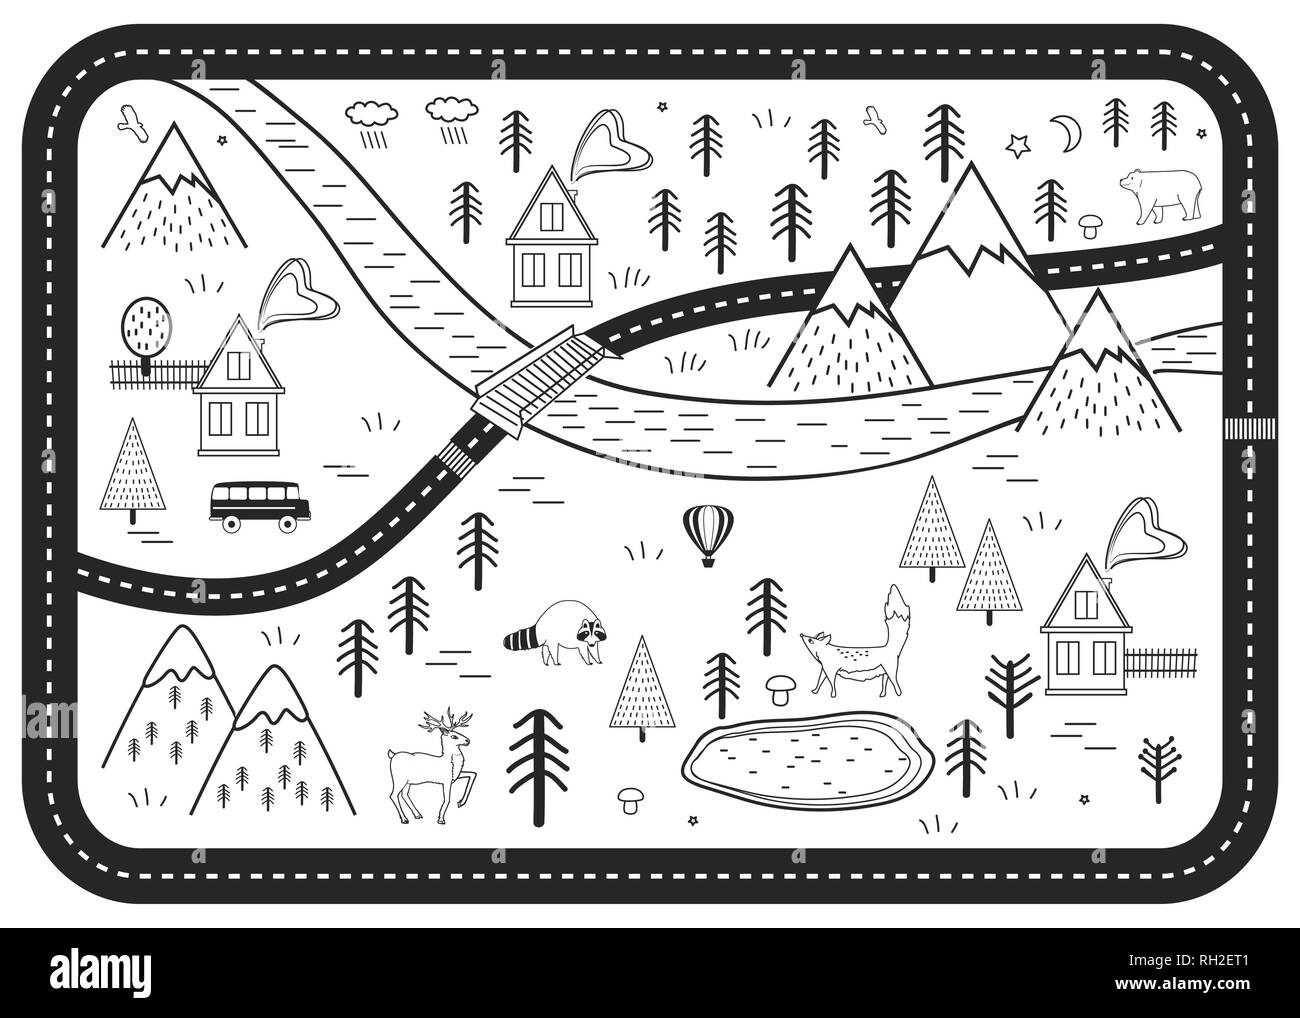 Black and White Kids Road Play Mat. Vector River, Mountains and Woods Adventure Map with Houses and Animals. Scandinavian Style Art Print. - Stock Vector